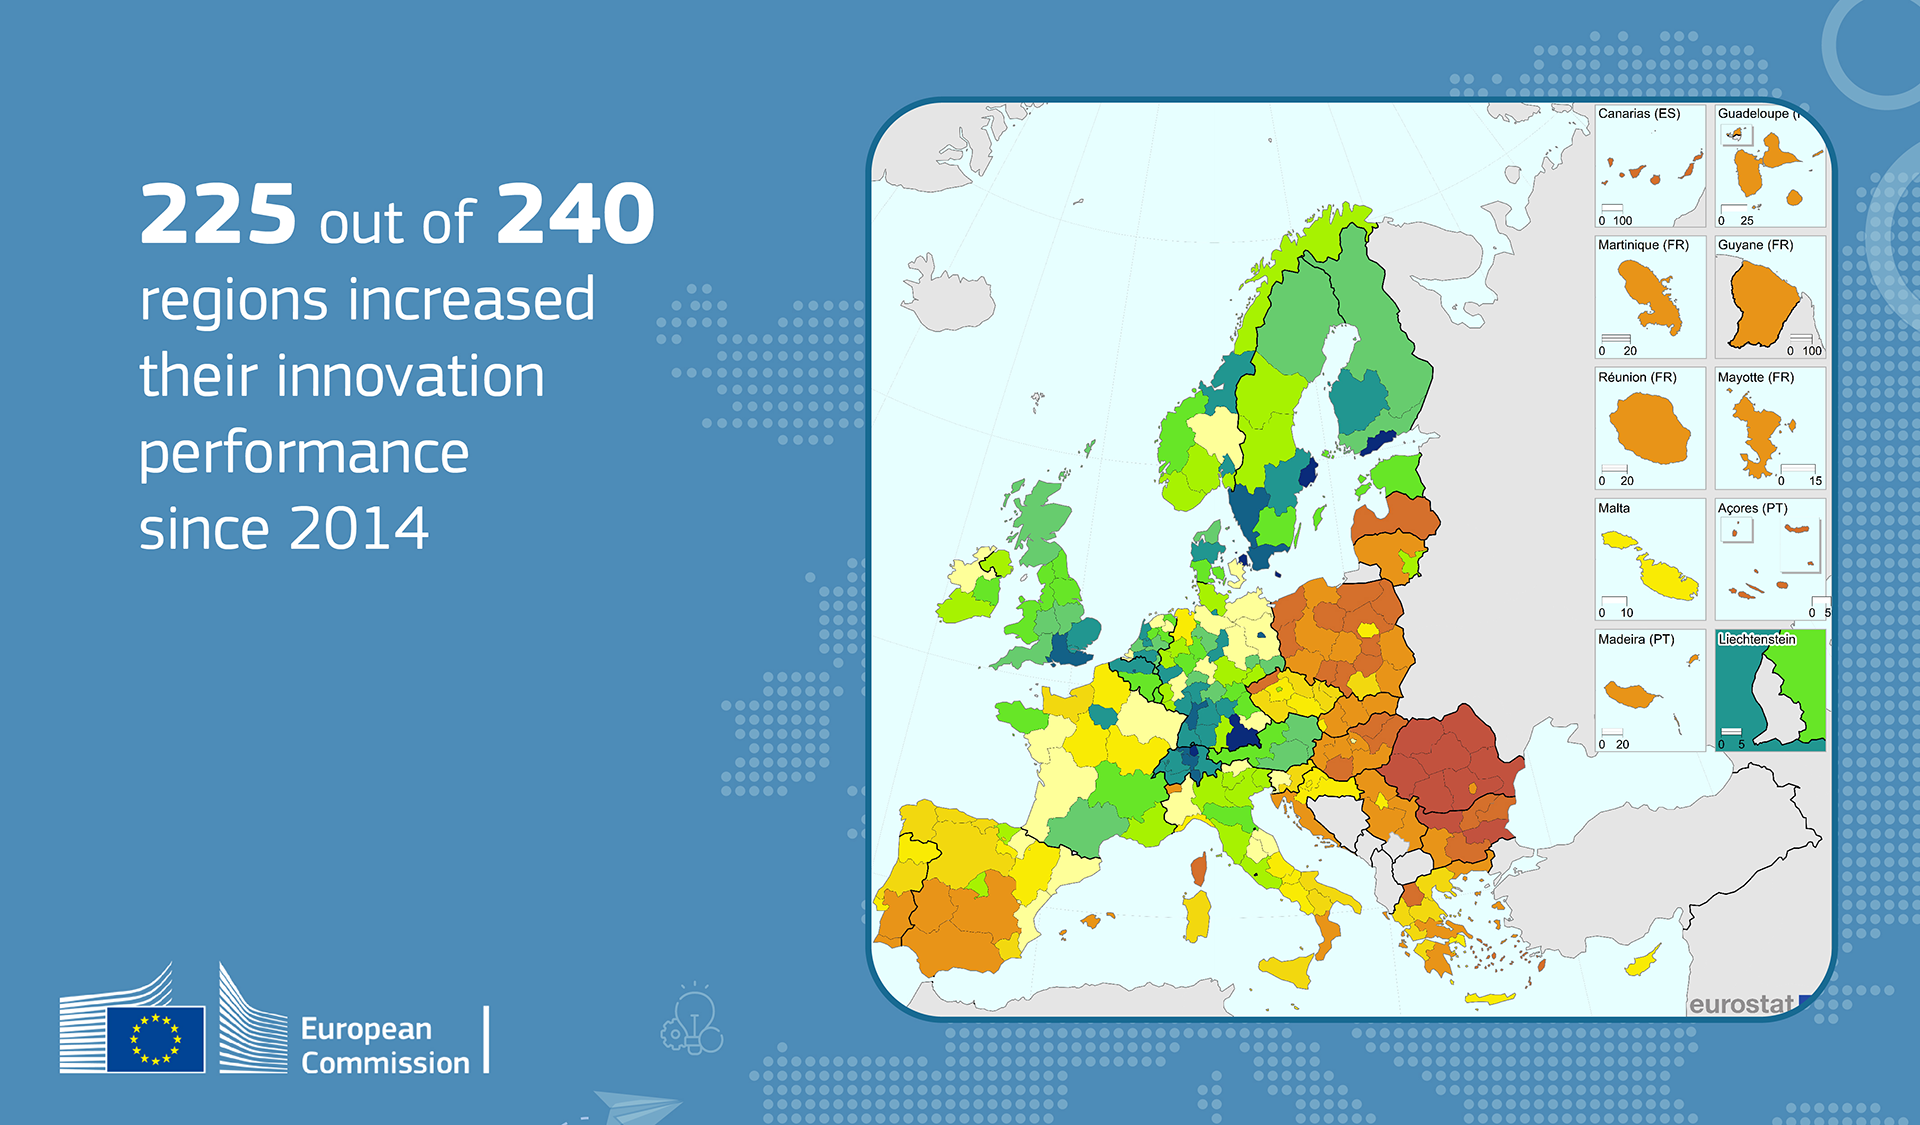 Innovation Map of Europe